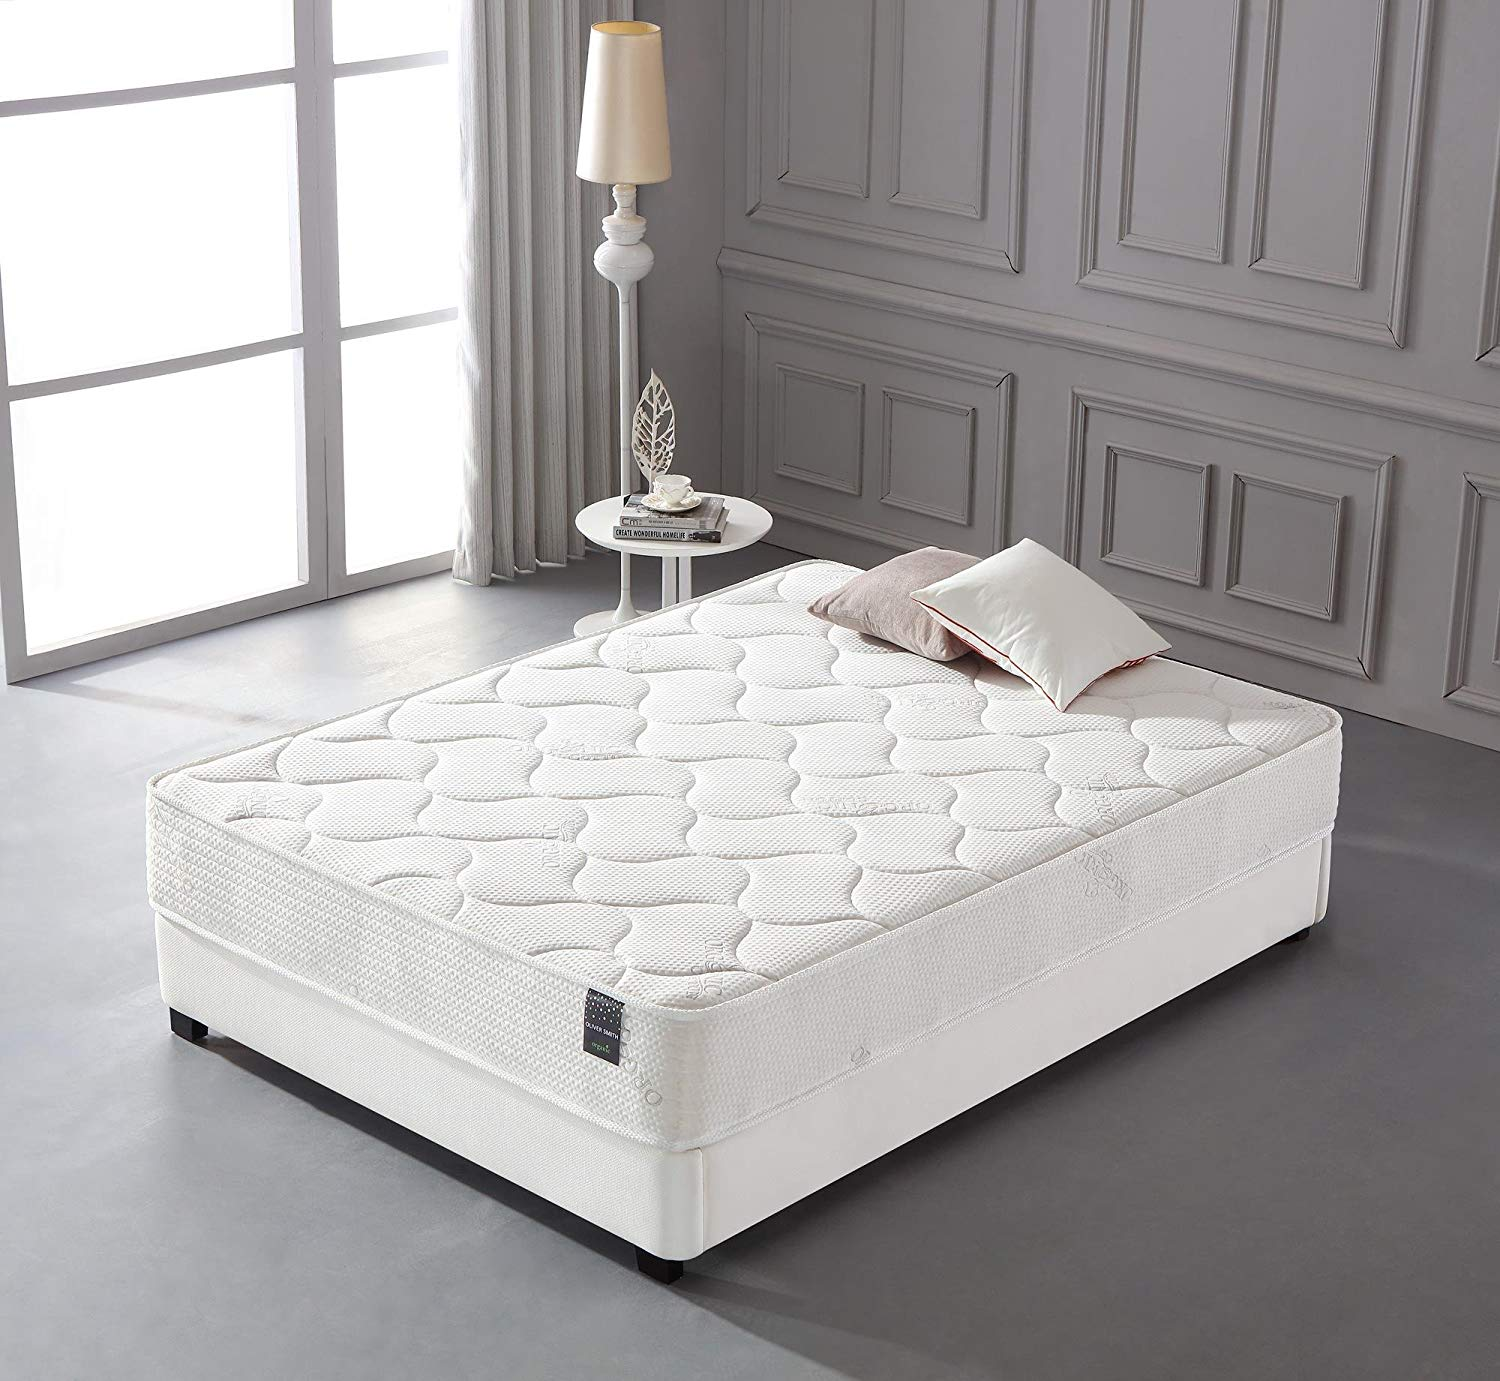 10 inch Memory Foam and Spring Hybrid Queen Size Mattress